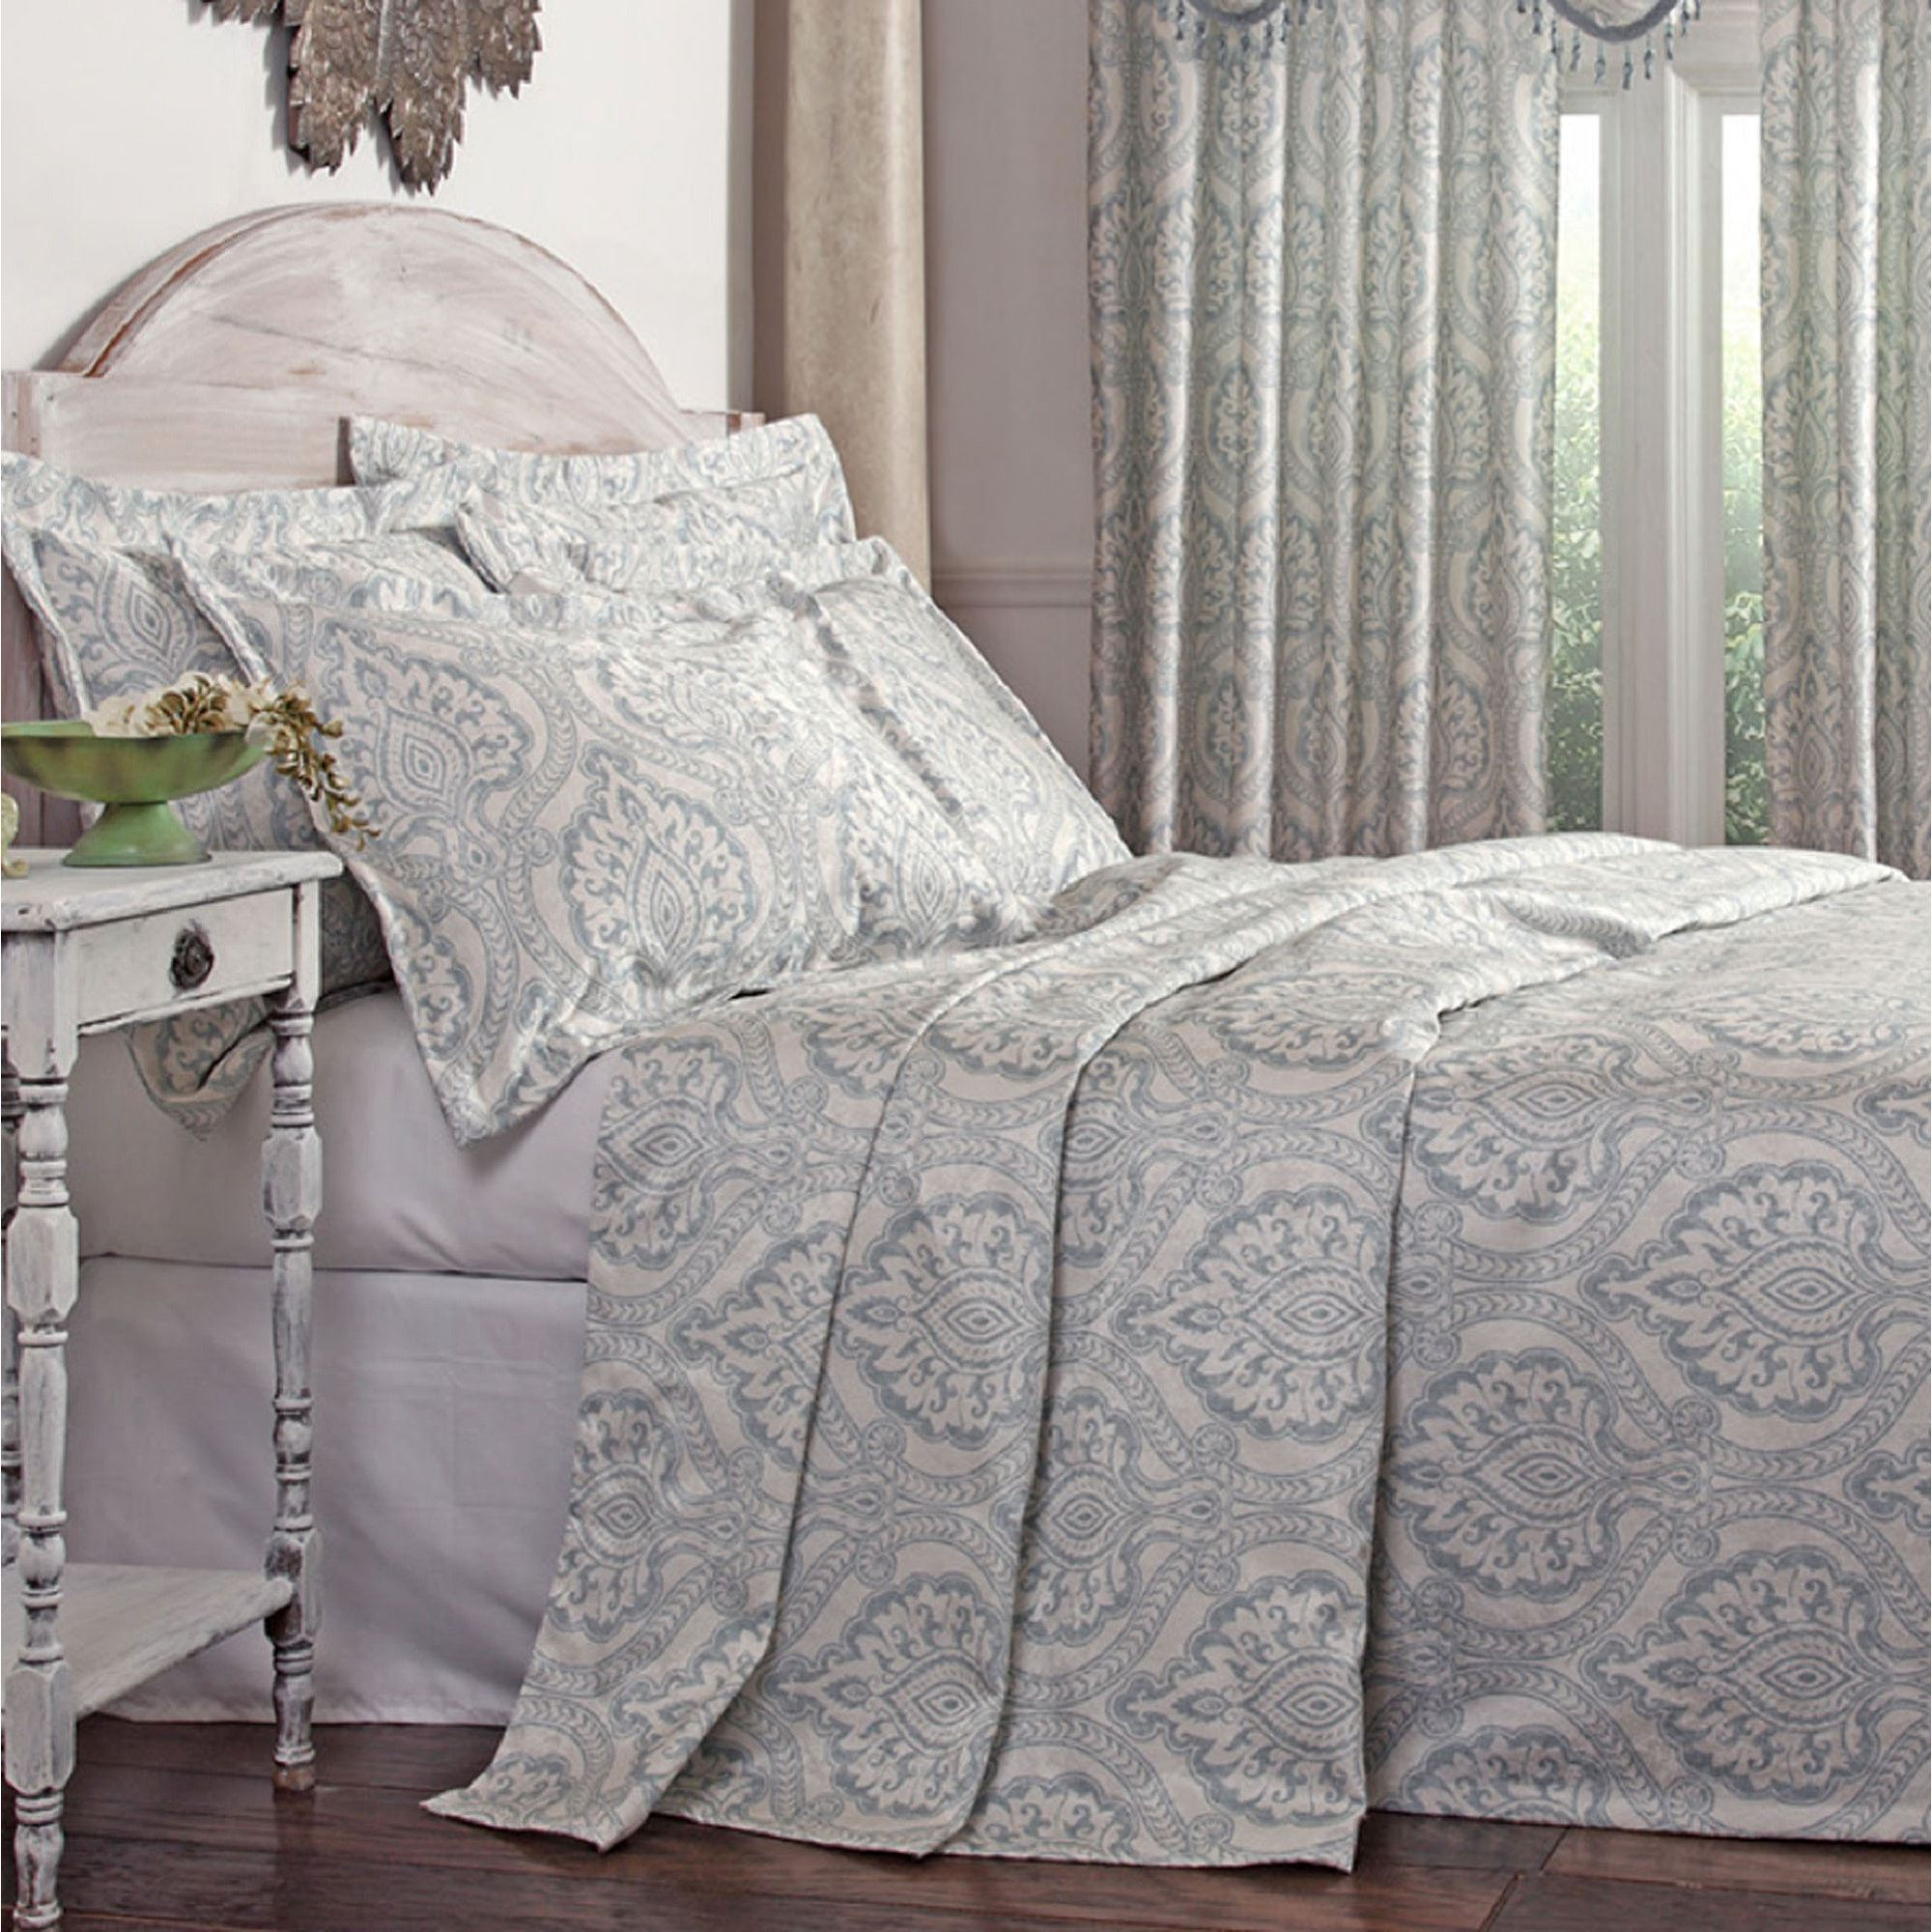 Beautiful damask bedding for bed decorating ideas with damask bedding set and damask crib bedding